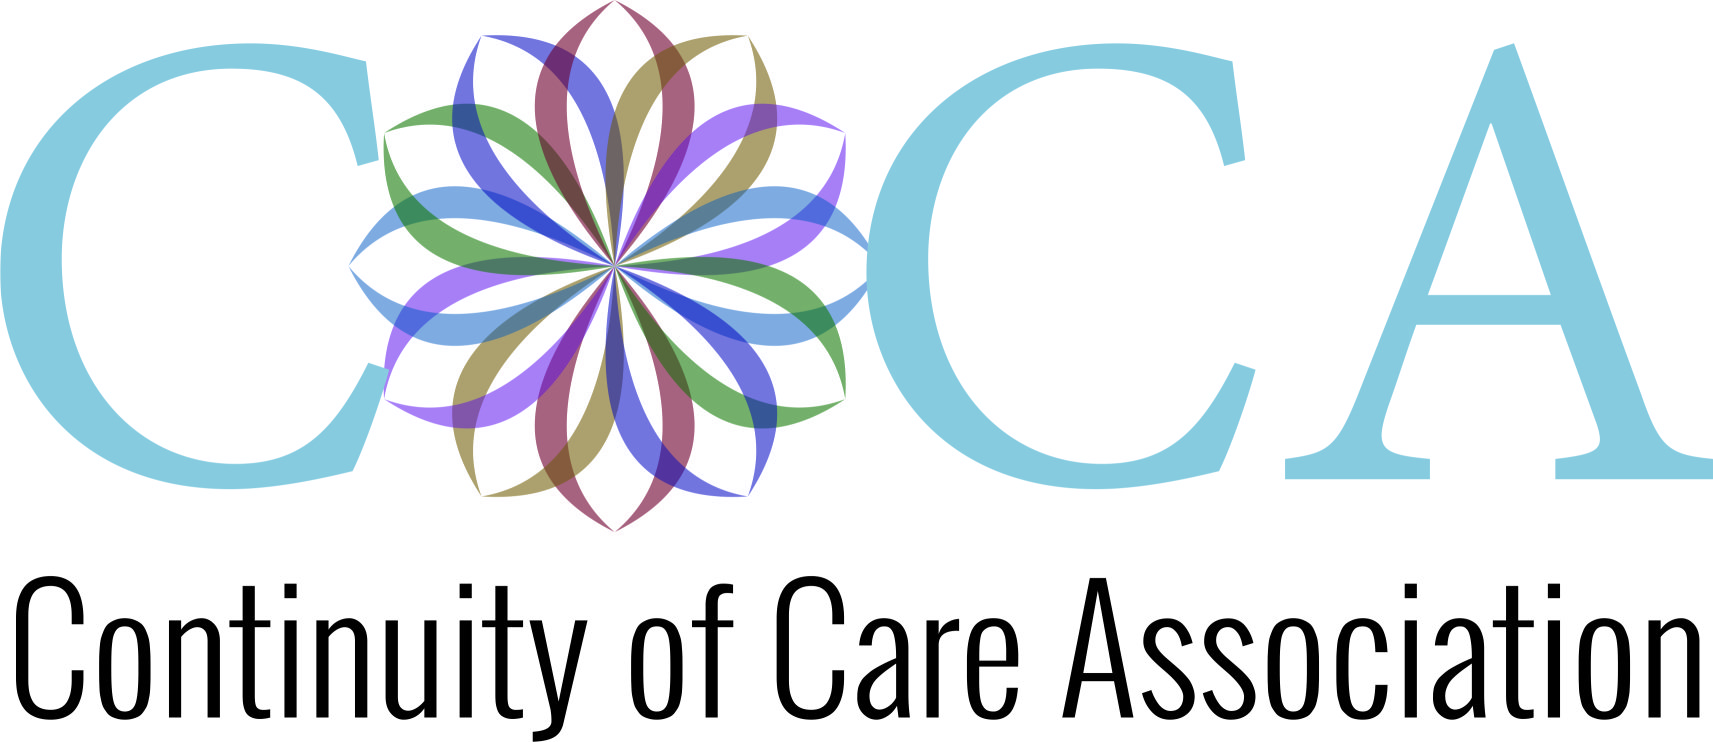 Continuity of Care Association